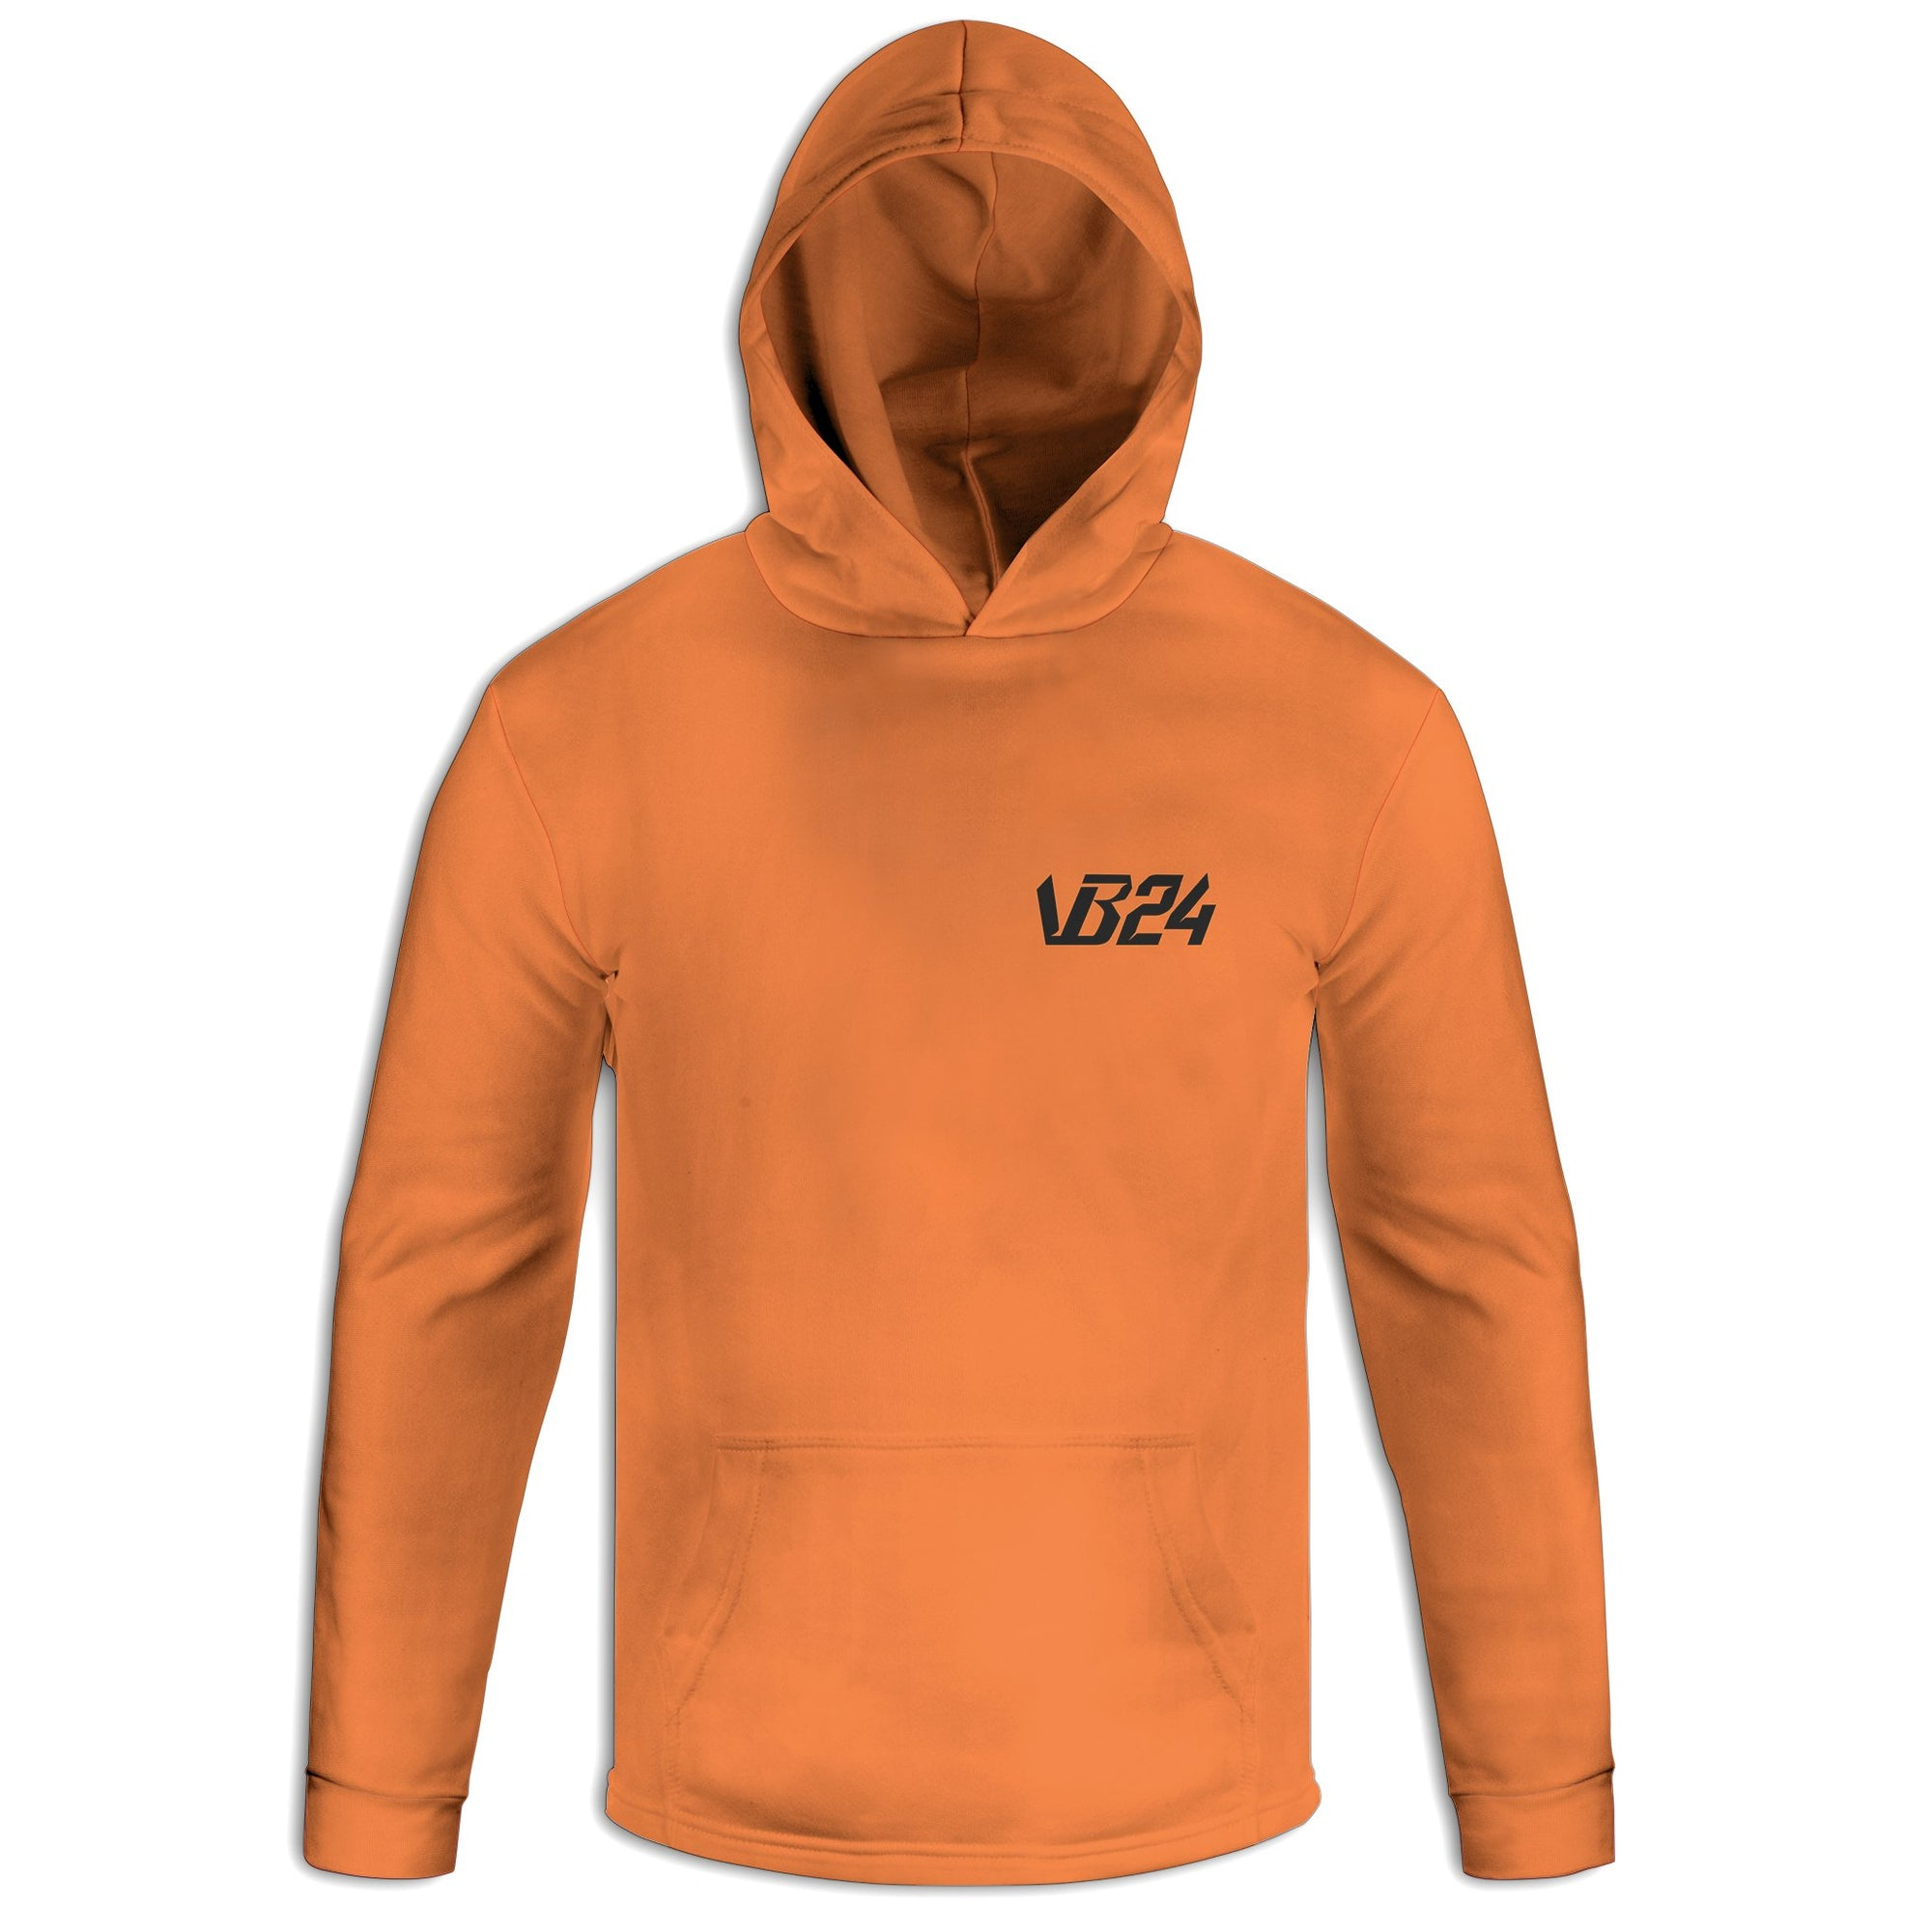 Twenty Four - Orange Hoodie | vonbellshop.com